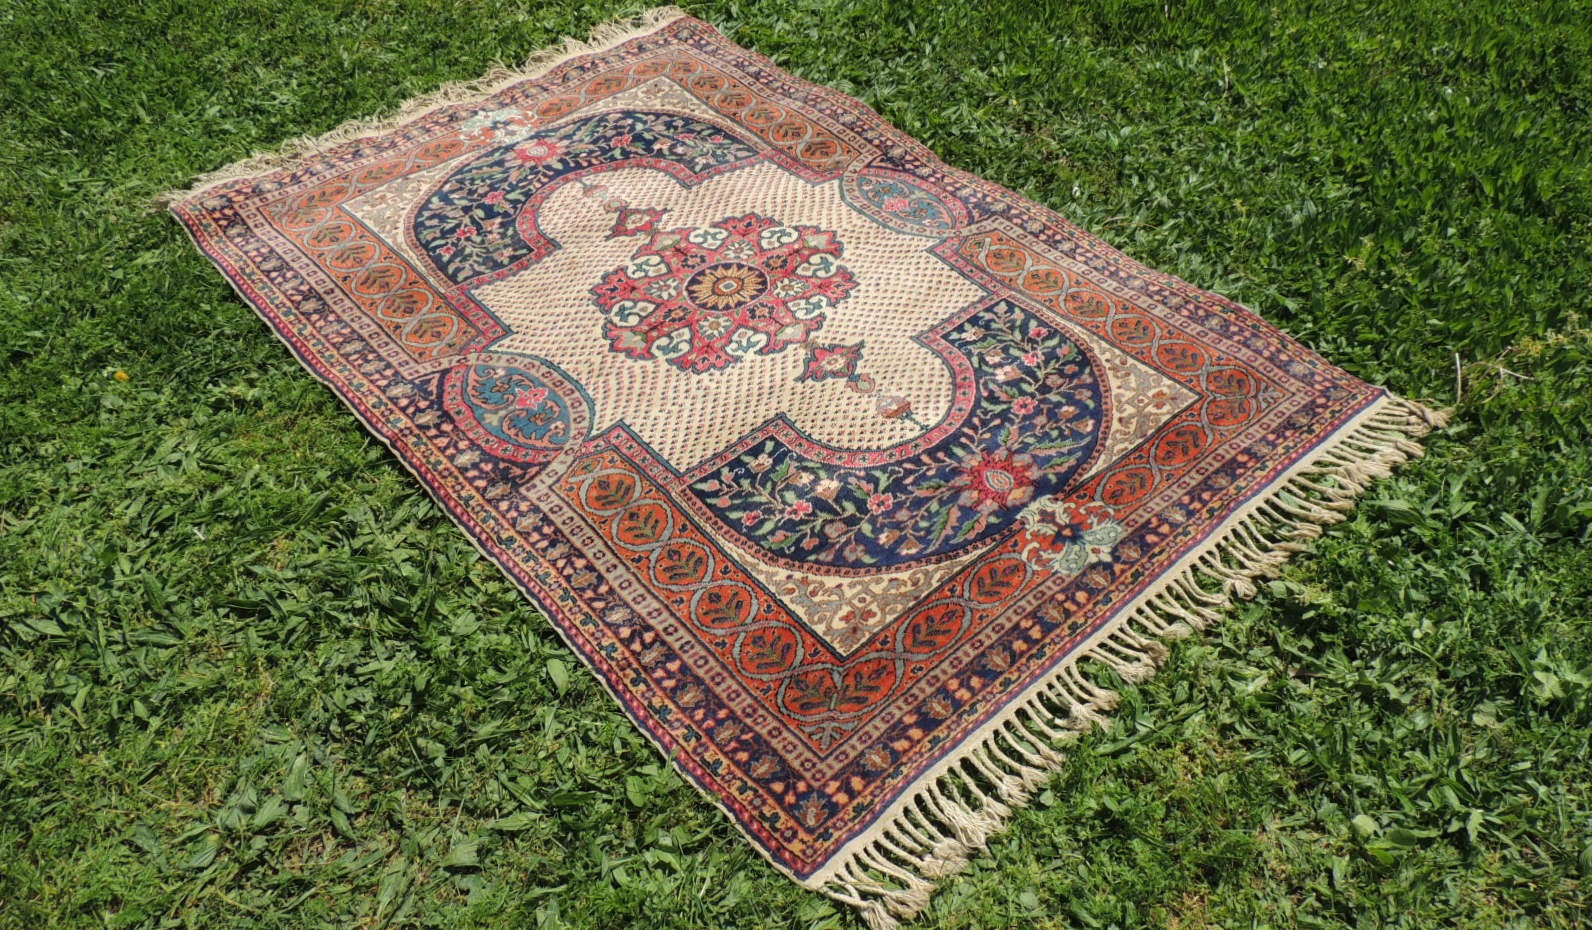 Antique Turkish Kayseri area rug - bosphorusrugs  - 1